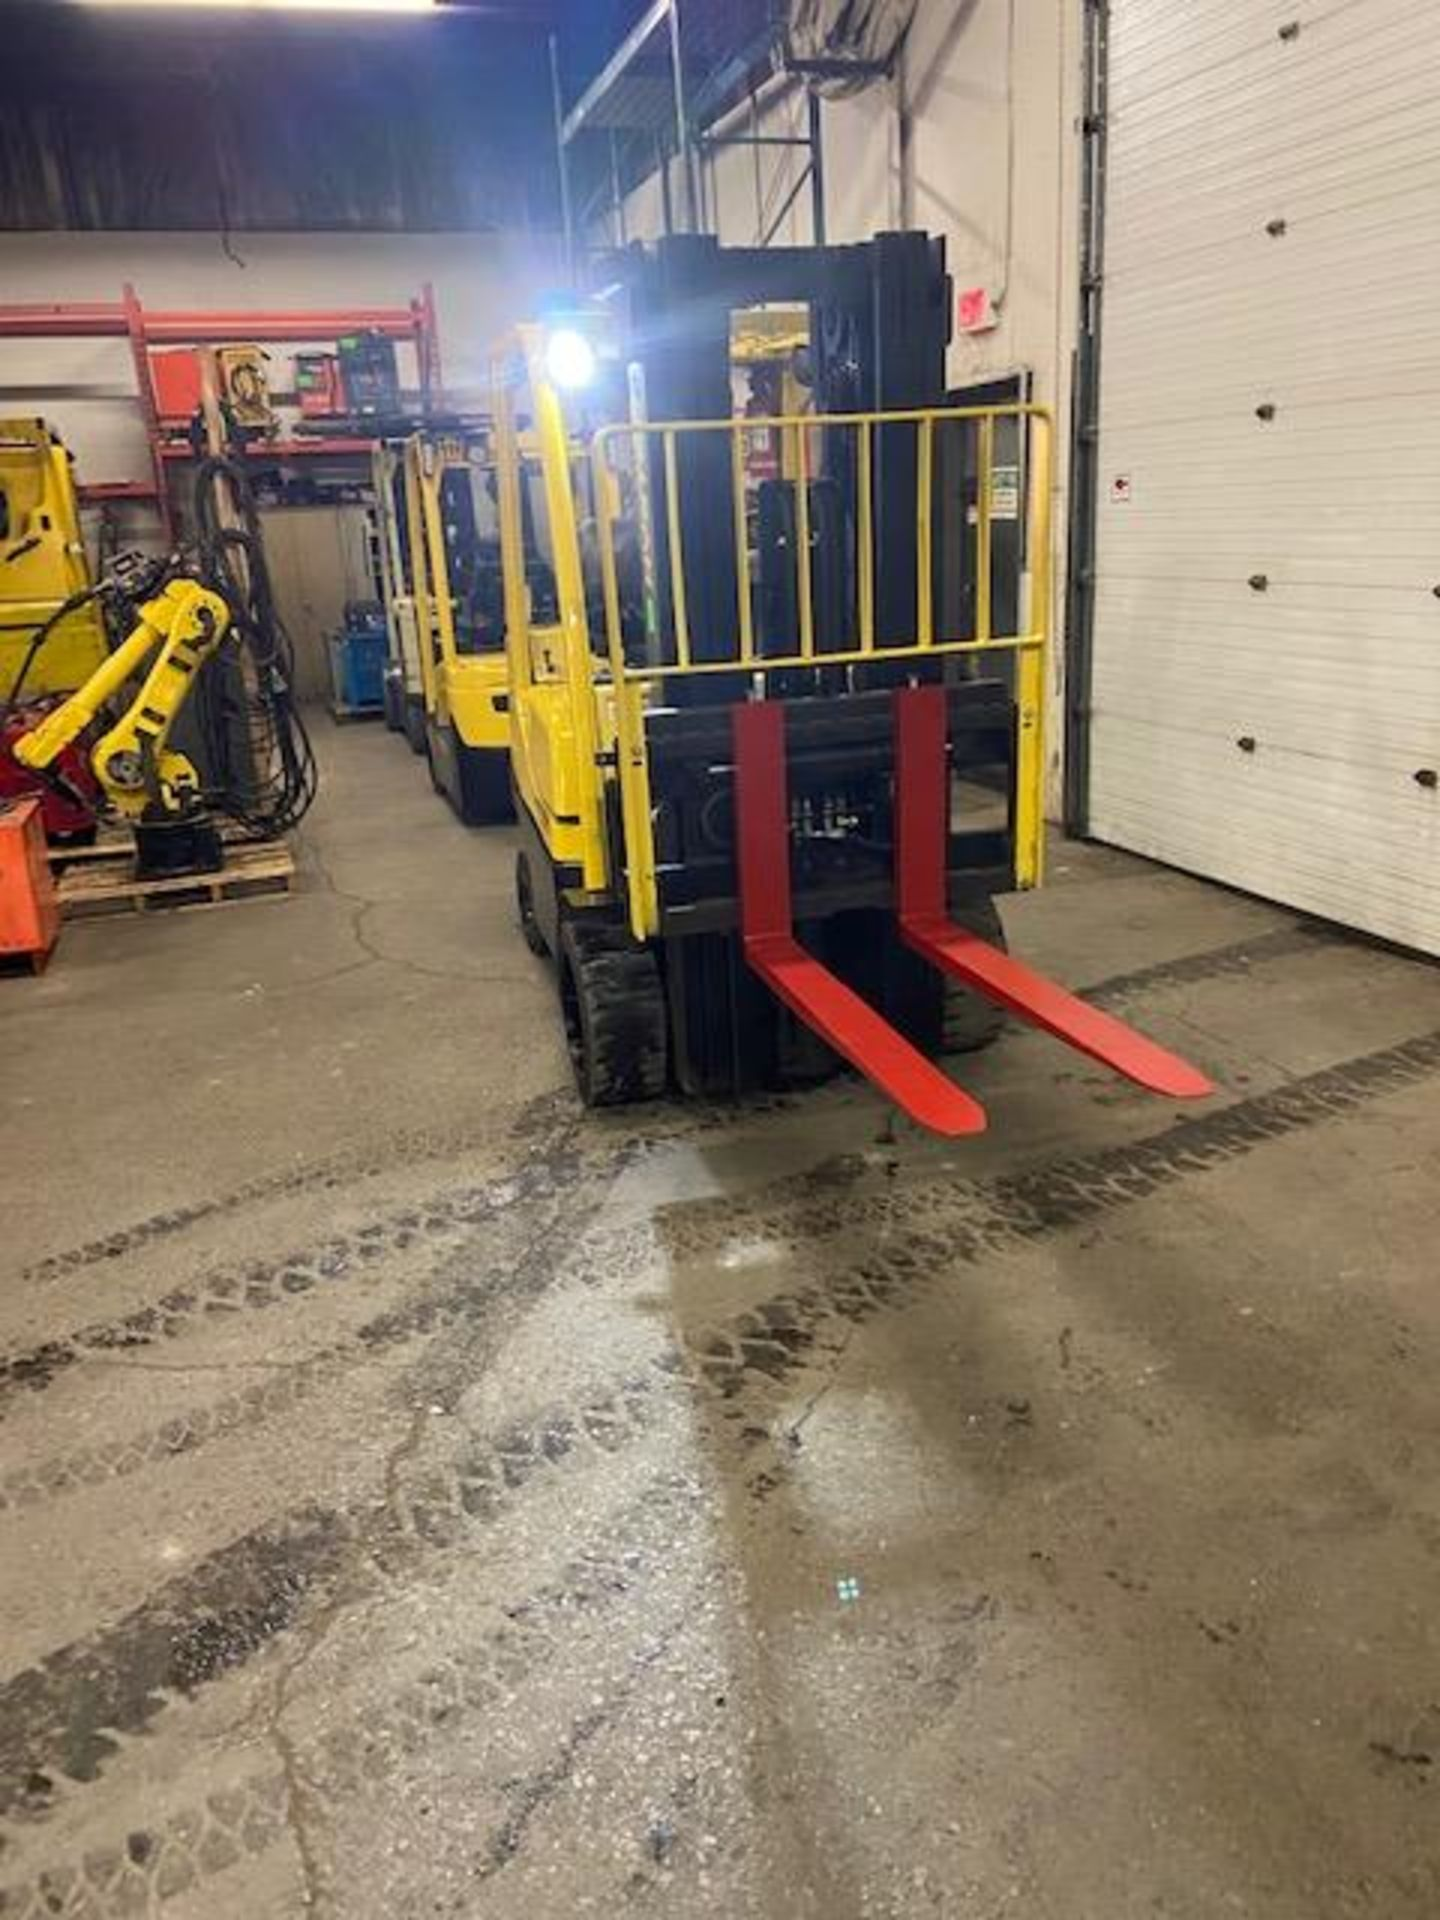 FREE CUSTOMS - 2014 Hyster 8000lbs capacity LPG (propane) Forklift with 3-stage mast & sideshift (no - Image 2 of 2